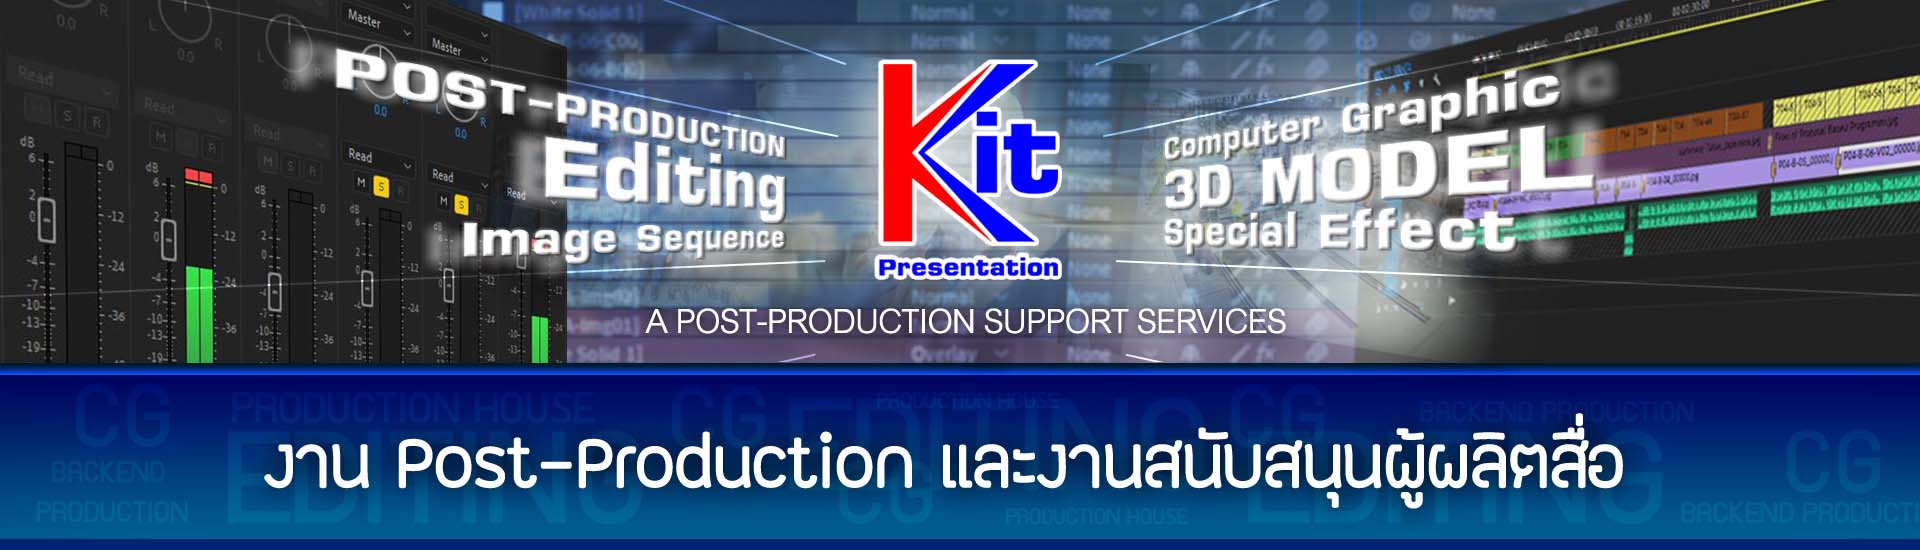 Thailand-Backend-Post-Production